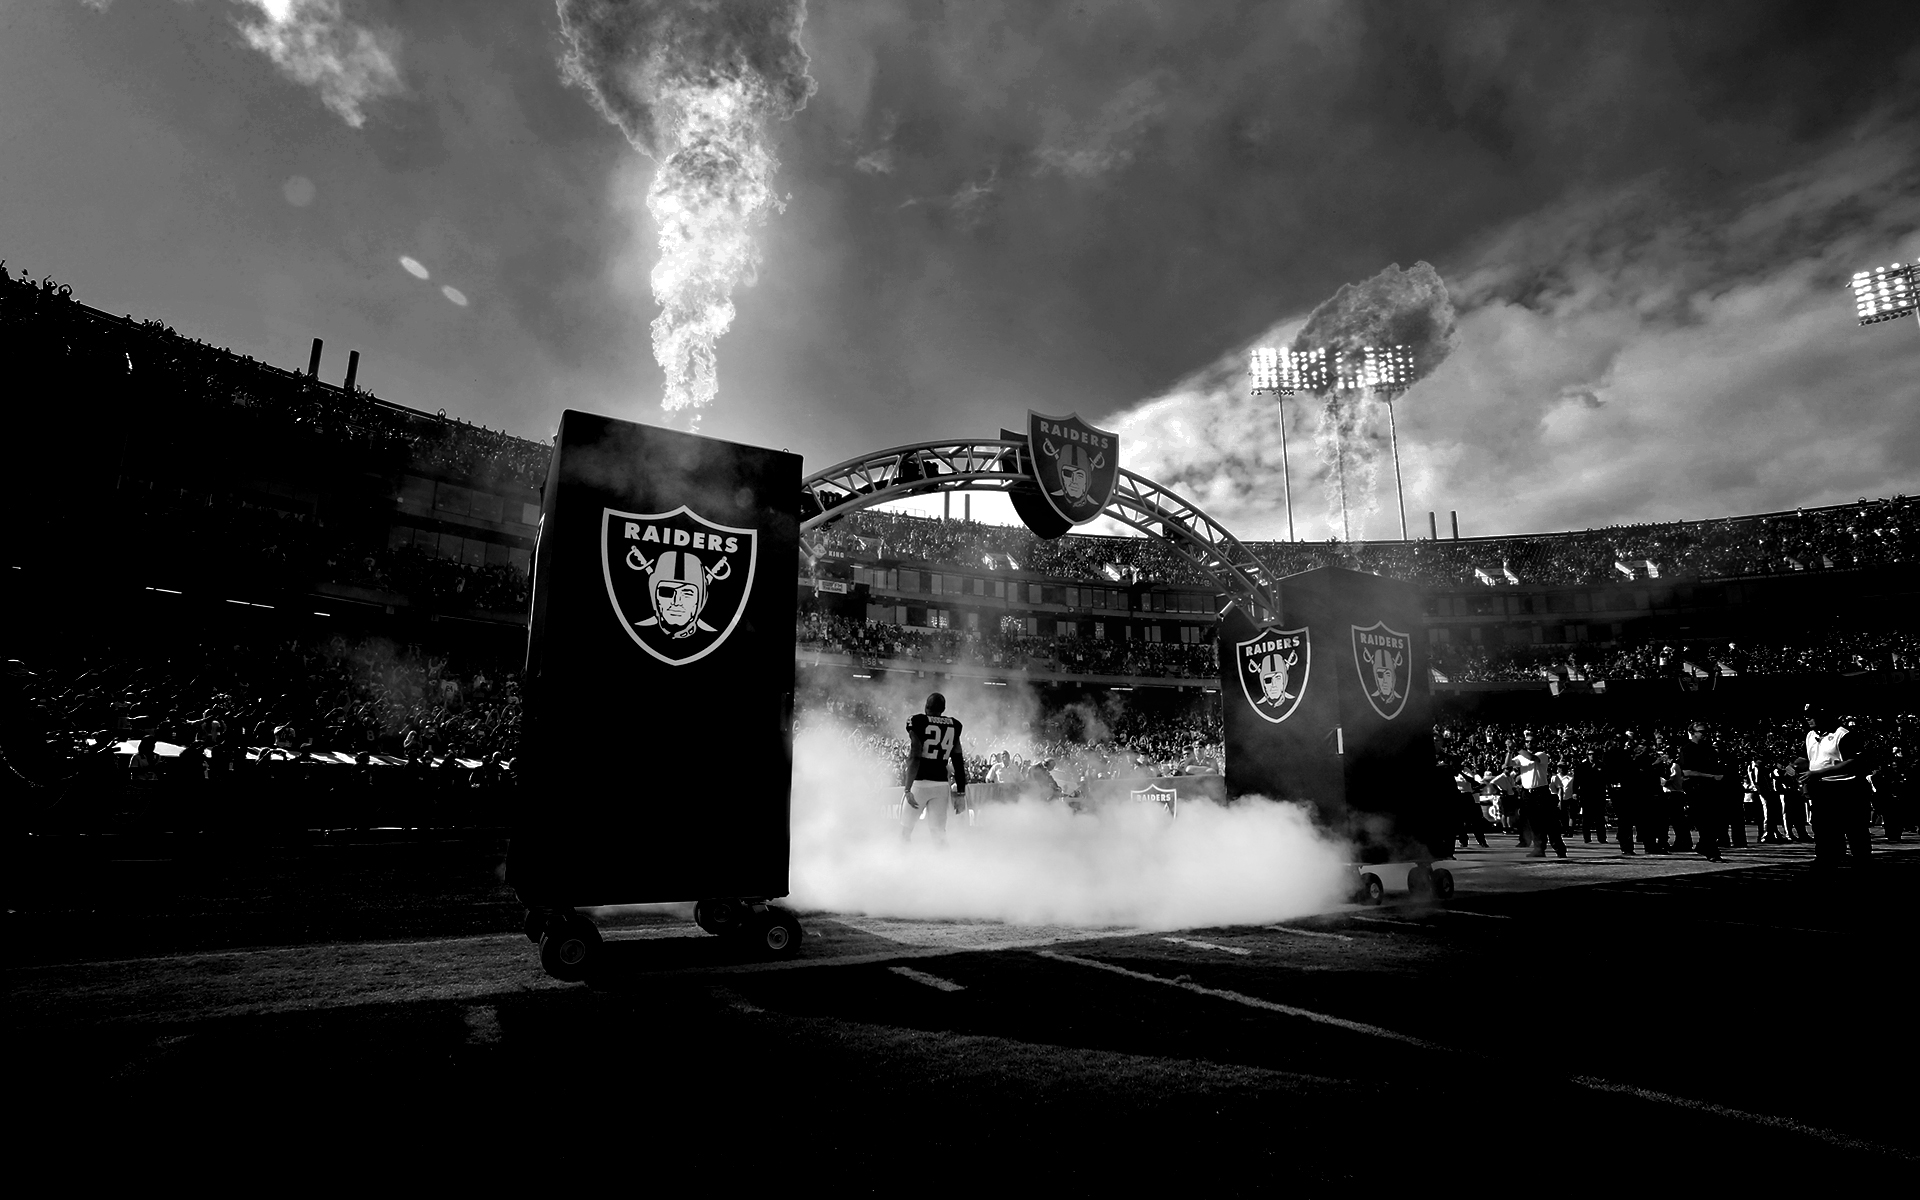 wallpapers | raiders